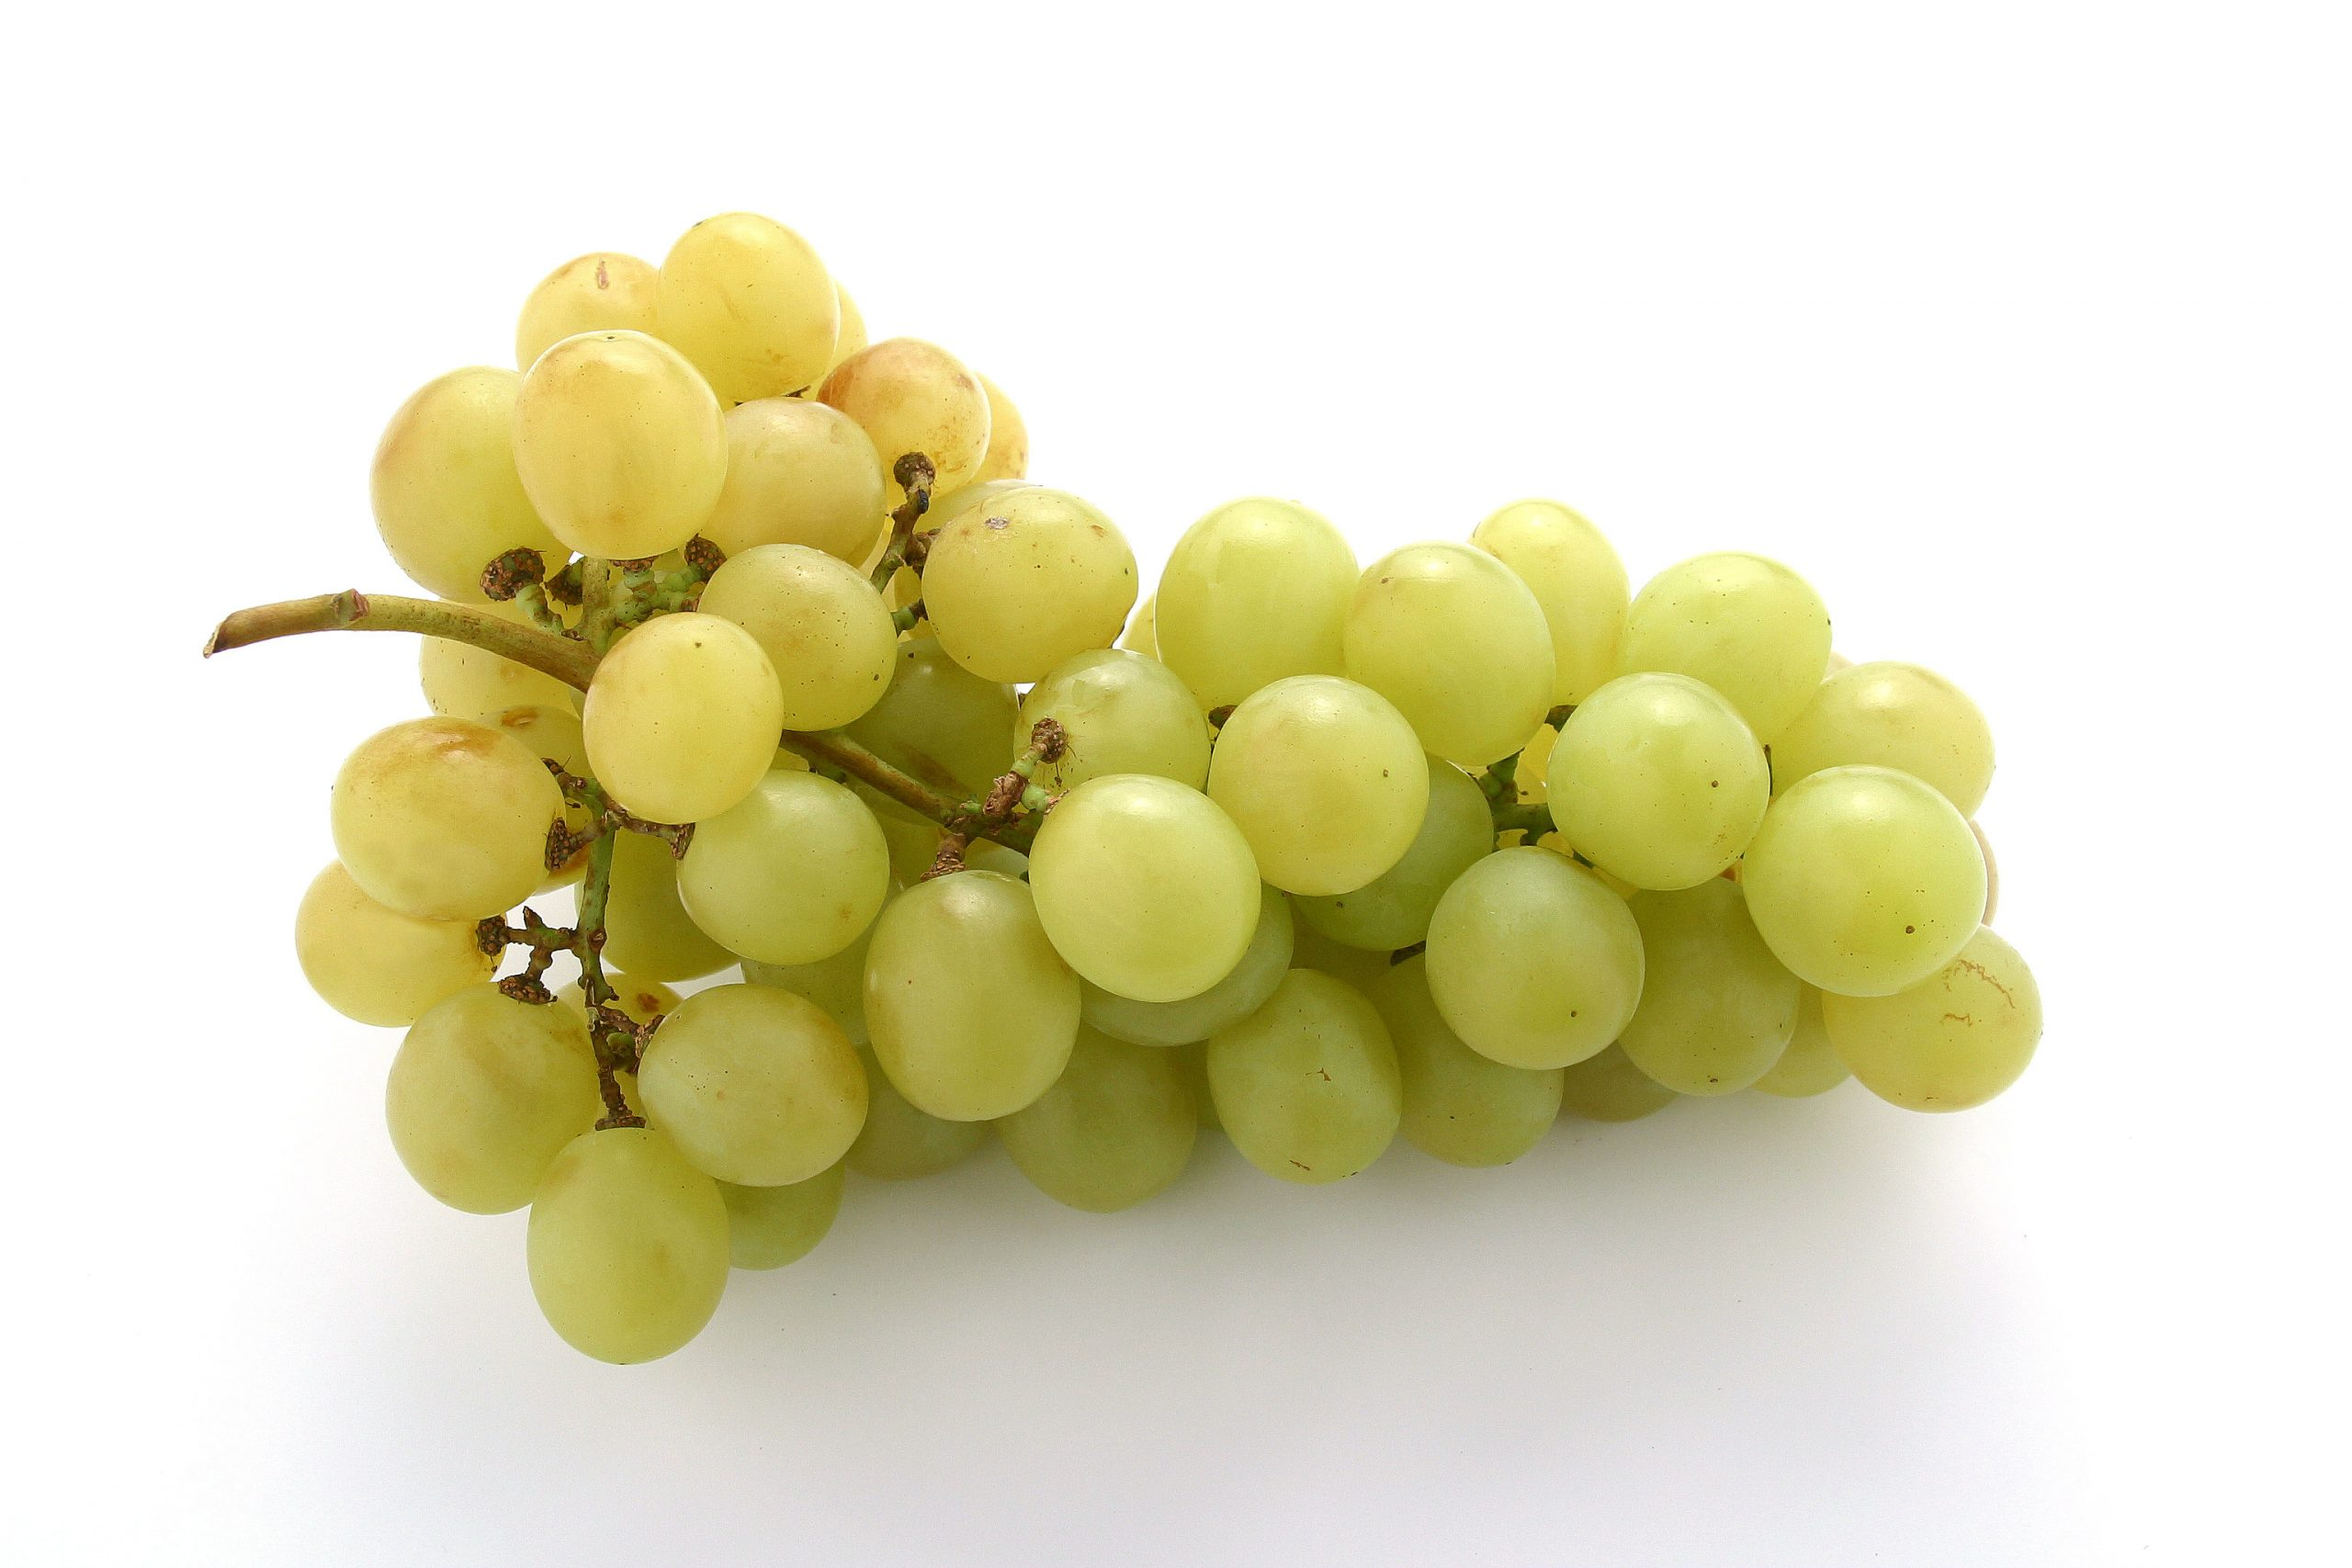 World table grape production is forecast to increase slightly to 21.0 million tons as continued growth in China is mostly offset by declines in Turkey and Chile. Global trade is forecast to contract slightly as lower exports by Chile, Turkey, and the United States only partly offset China's record exports.